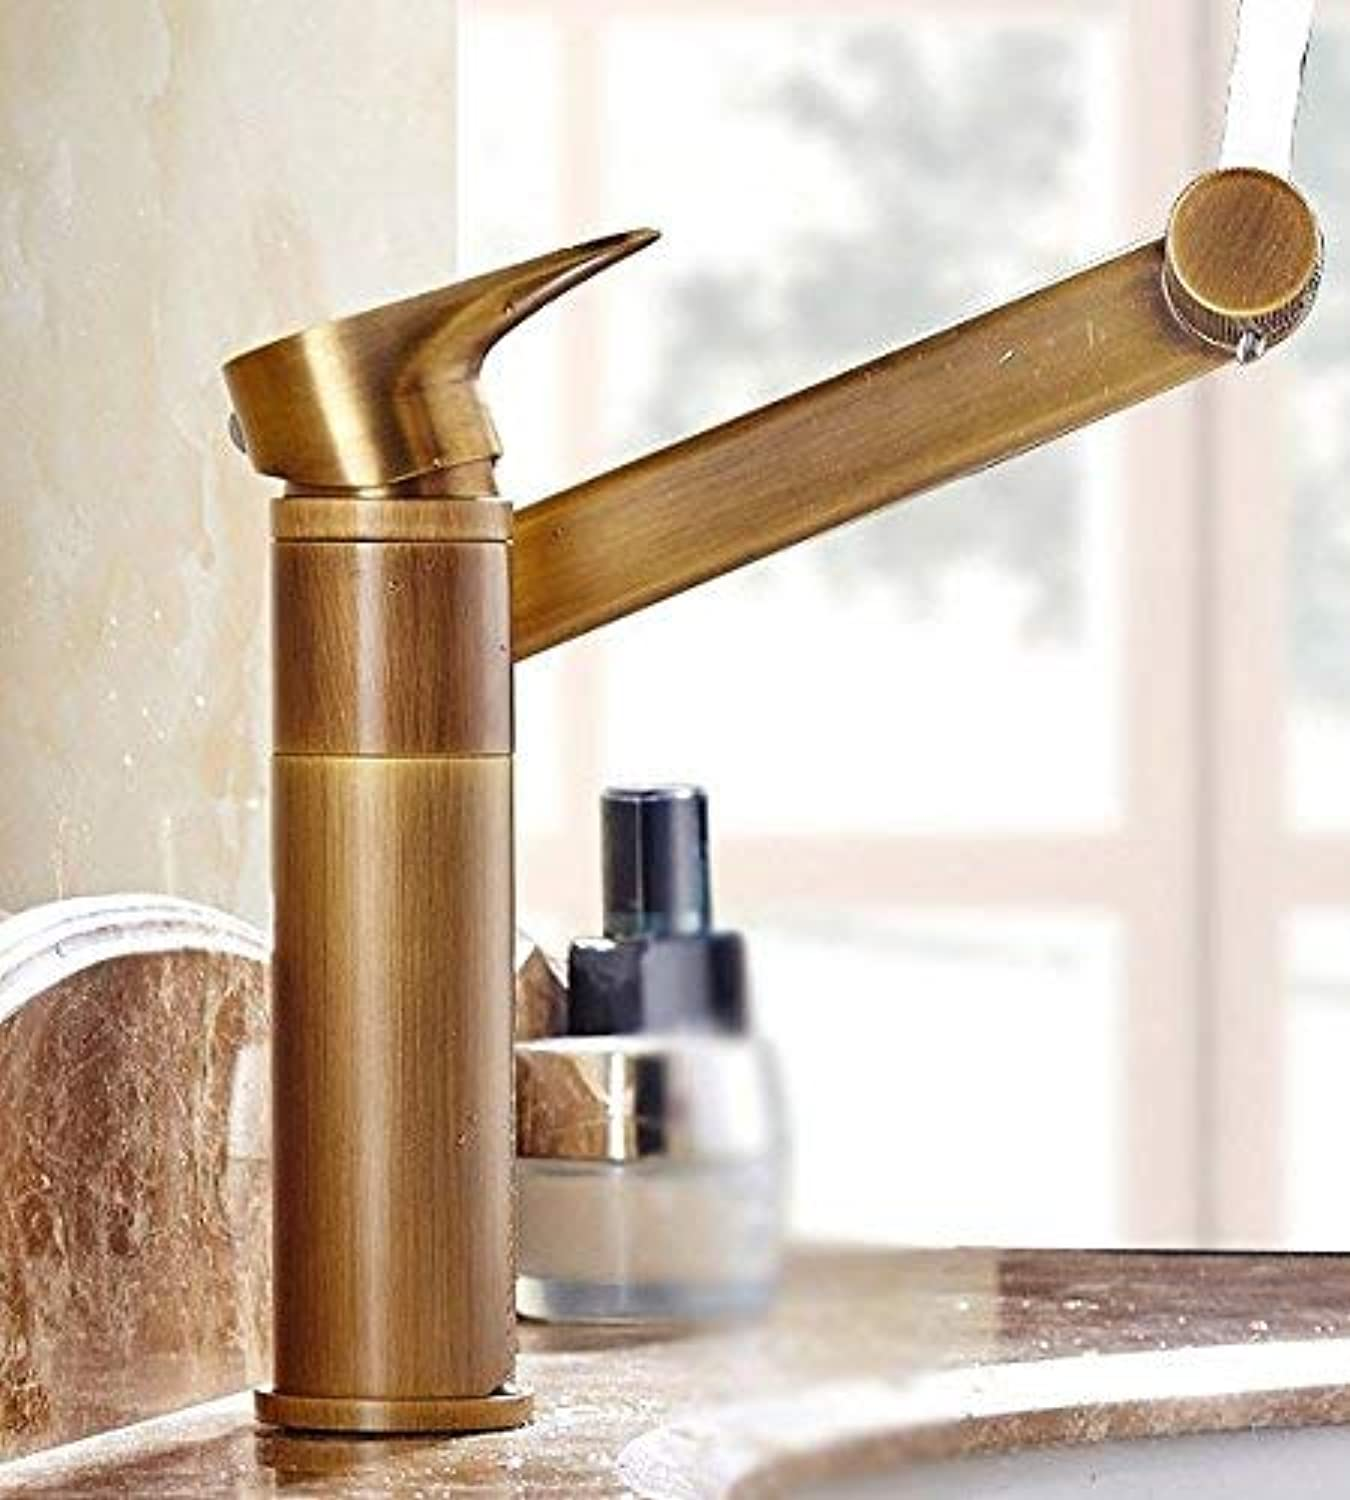 Oudan Copper Washing The Face Hot and Cold Bathroom Wc redate Sink Mixer Taps